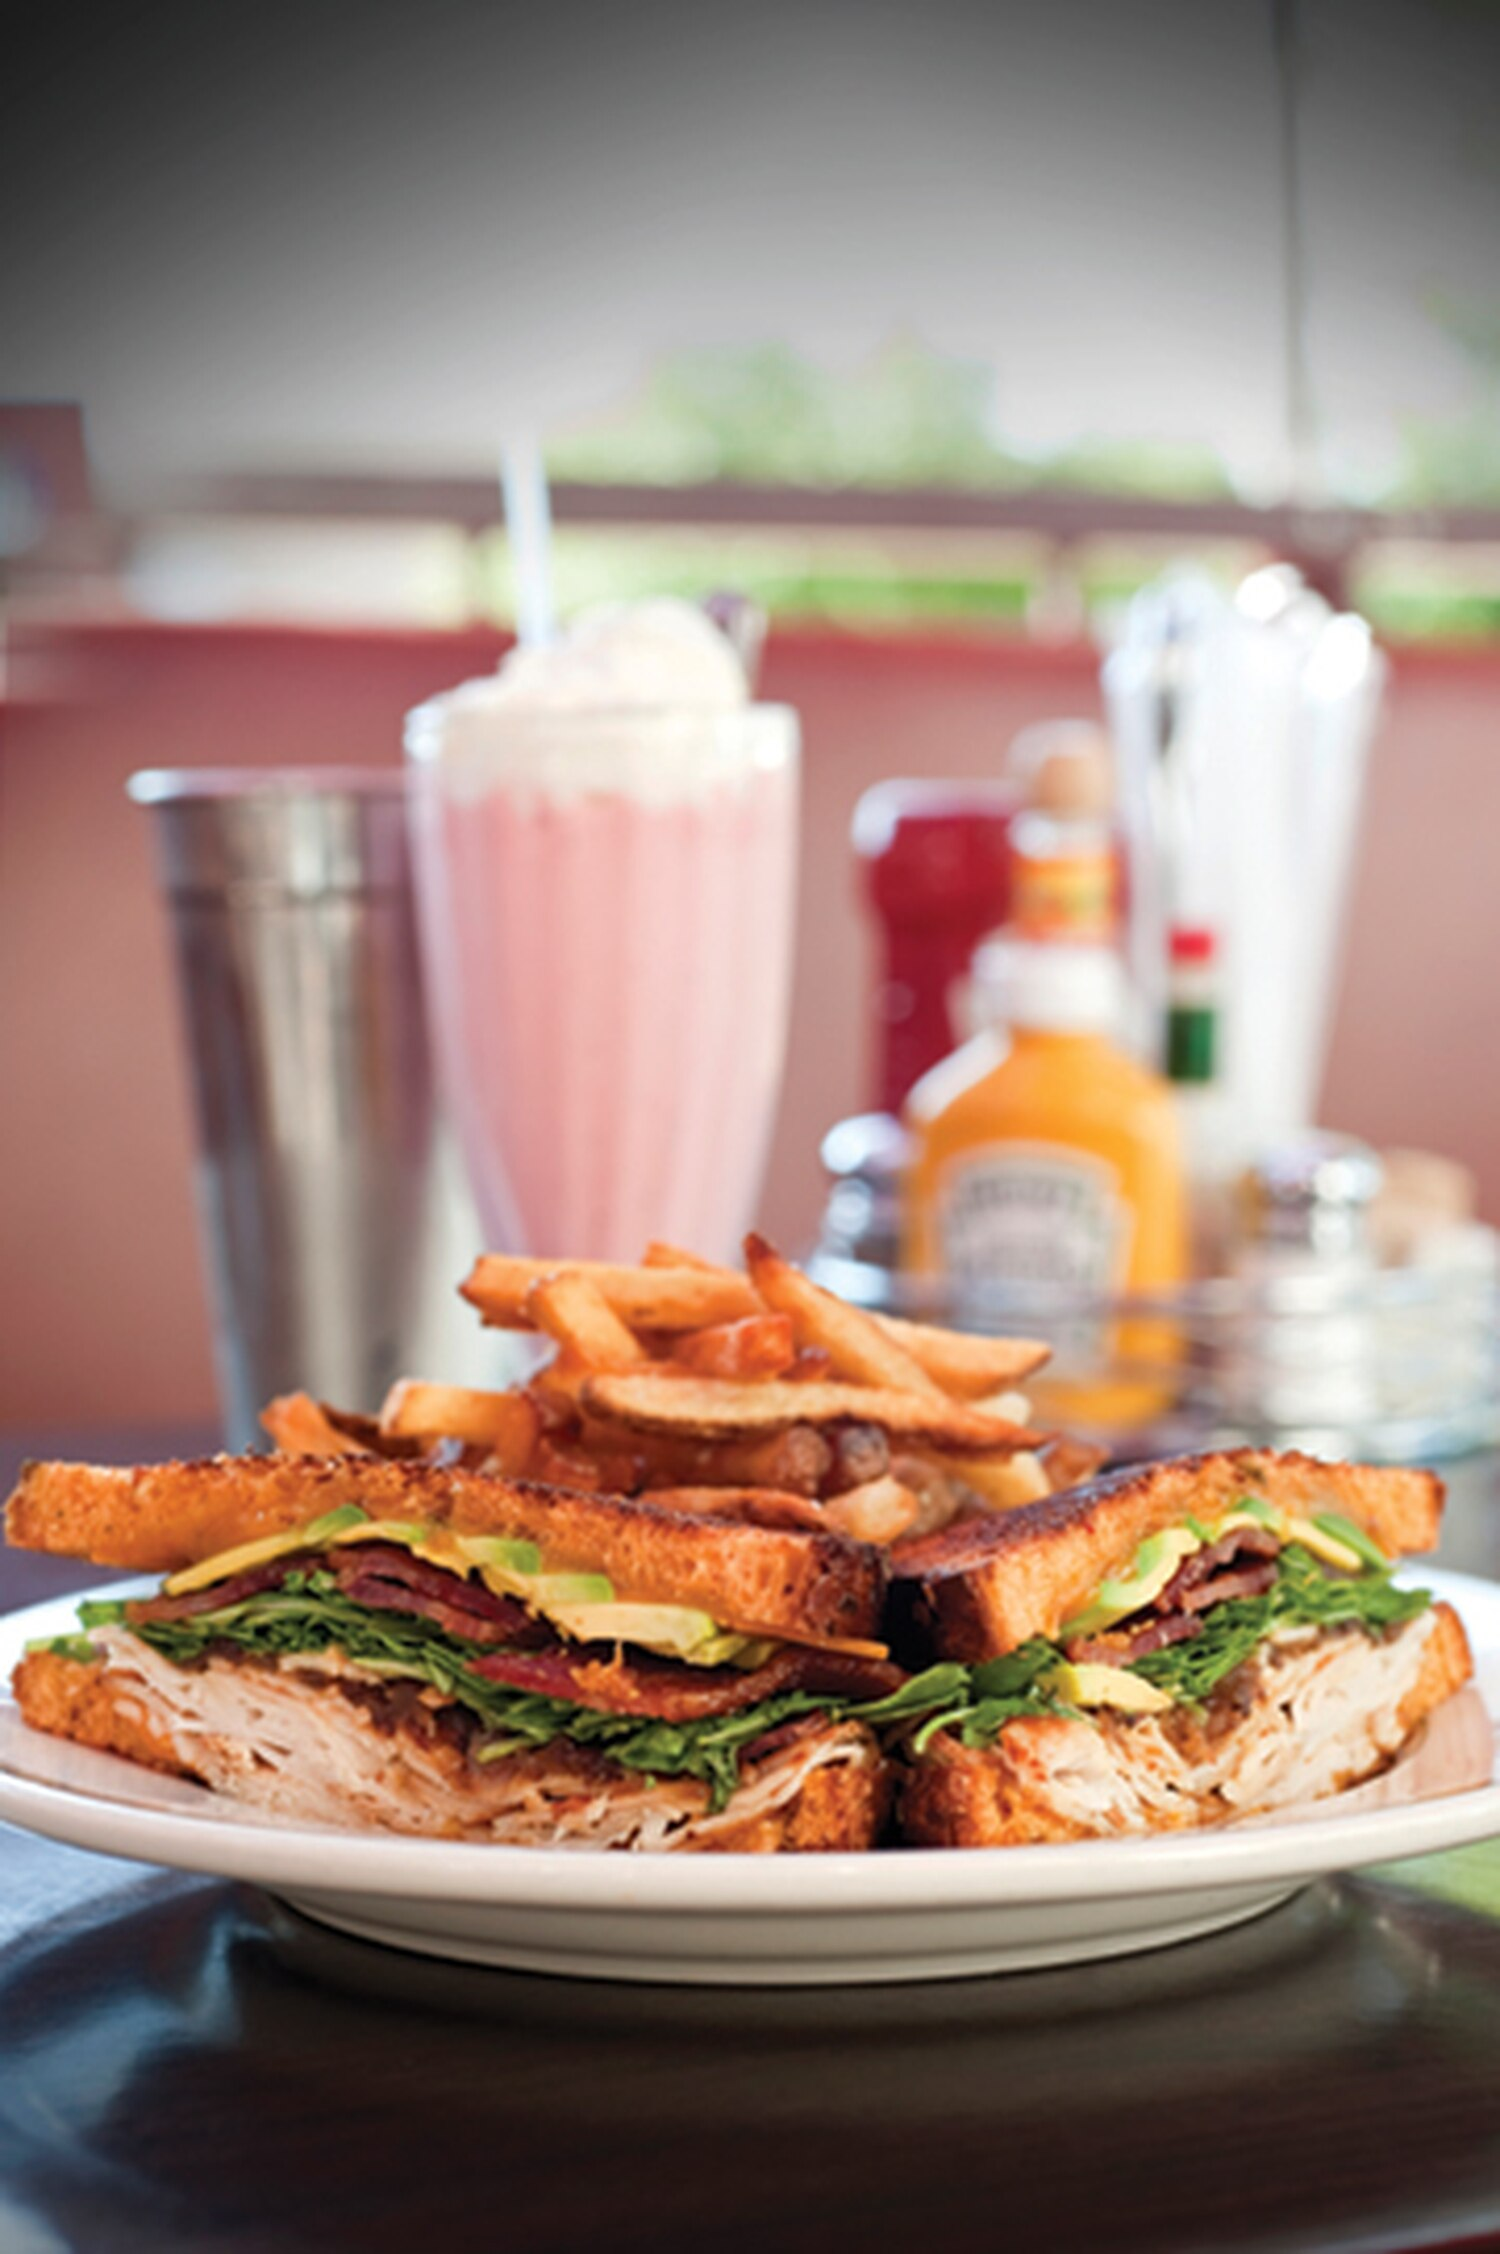 Turkey melt with strawberry shake. 3466 Zafarano Drive, 424-0755 Breakfast, lunch and dinner daily Plaza Café Southside While the Plaza Café downtown may recall the City Different's Greek roots, its Southside compatriot feels more firmly planted in the charms of another era—a chrome-plated, neon-lit, milk-shaking era. The Plaza Café Southside fuels indulgences in the classic pleasures of a hamburger and French fries ($11.95) or 8-ounce grass-fed rib-eye steak and cheese enchiladas ($21). Wander off the beaten (and beef-driven) track to try the crispy avocado tacos ($12.95), avocado encrusted with crunchy quinoa, sesame and poppy seeds topped with a colorful splash of pickled onion, cilantro, corn and red pepper and accompanied by a trio of salsas, the smoky red salsa matching particularly well. Round your meal out with a slice of caramel apple pie ($6.45), or get a little adventurous and go for the red velvet flan ($6.45), a dense layer of red velvet cake with creamy flan on top, a melt-in-your-mouth, expletive-inducing combination. Enjoy it all inside, amid the vinyl and chrome, or take it outside onto a pleasantly shaded patio on the San Isidro Plaza, facing the Regal Stadium 14. -EM